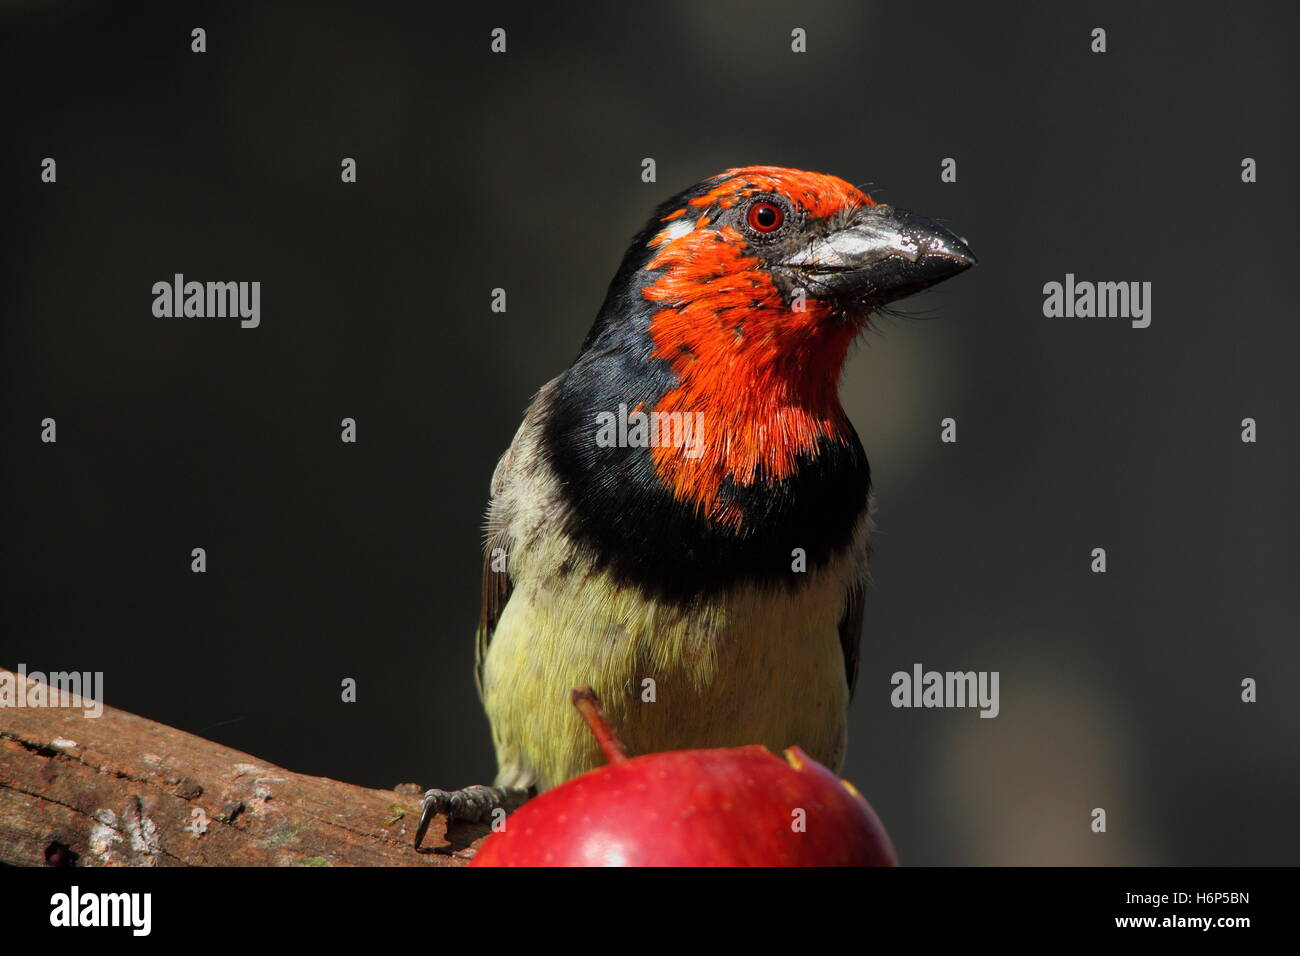 Black-Collared Barbet eating a red apple isolated against an out of focus background image in landscape format with - Stock Image